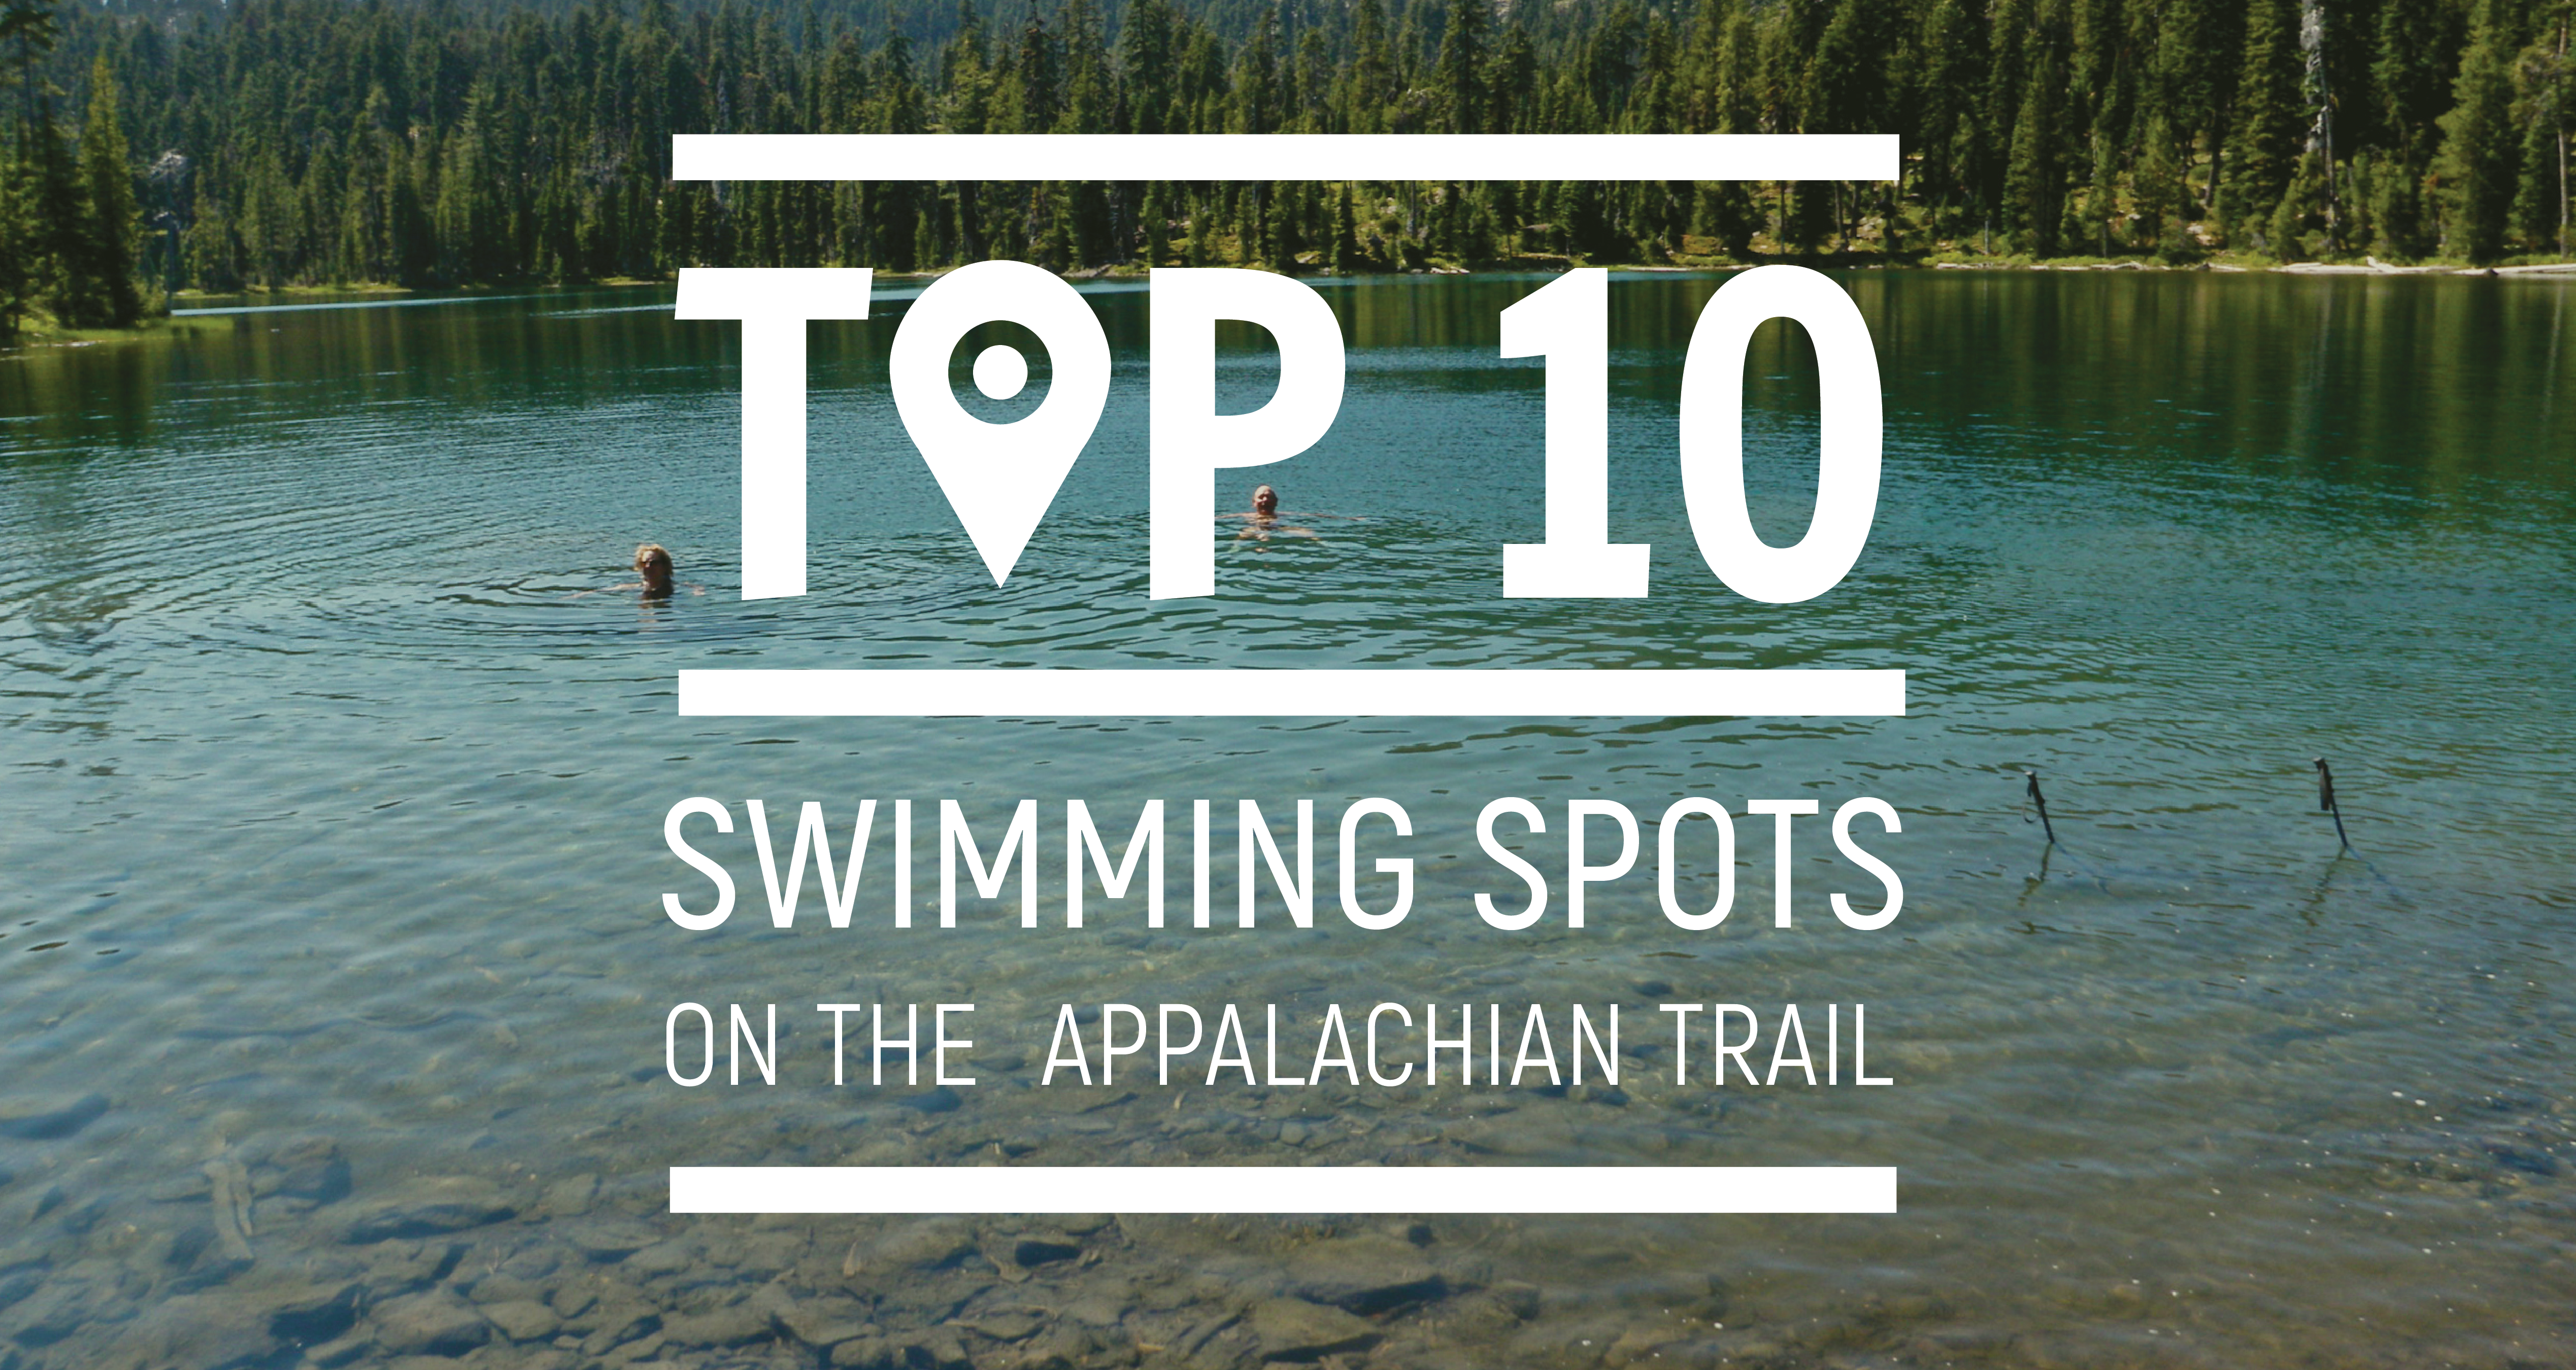 Top 10 Swimming Spots on the Appalachian Trail - The Trek